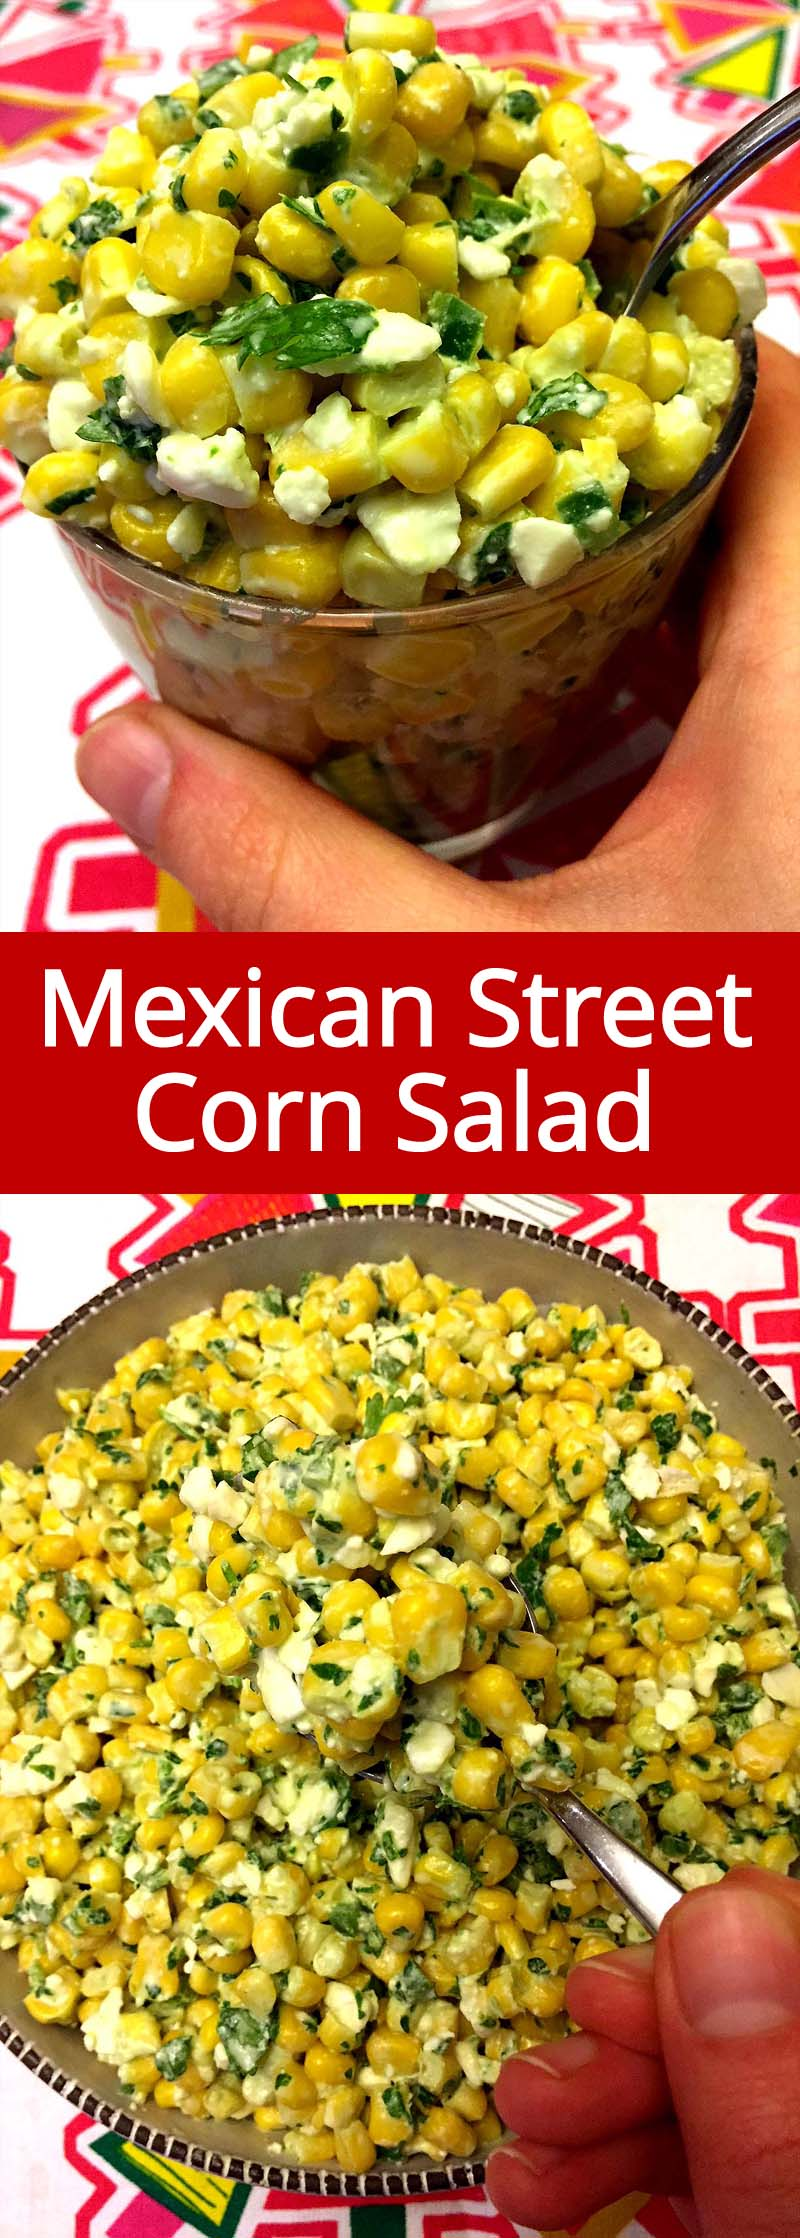 This Mexican street corn salad recipe is amazing! So refreshing and bursting with flavor! This is an authentic Mexican recipe, truly the best Mexican street corn salad ever!